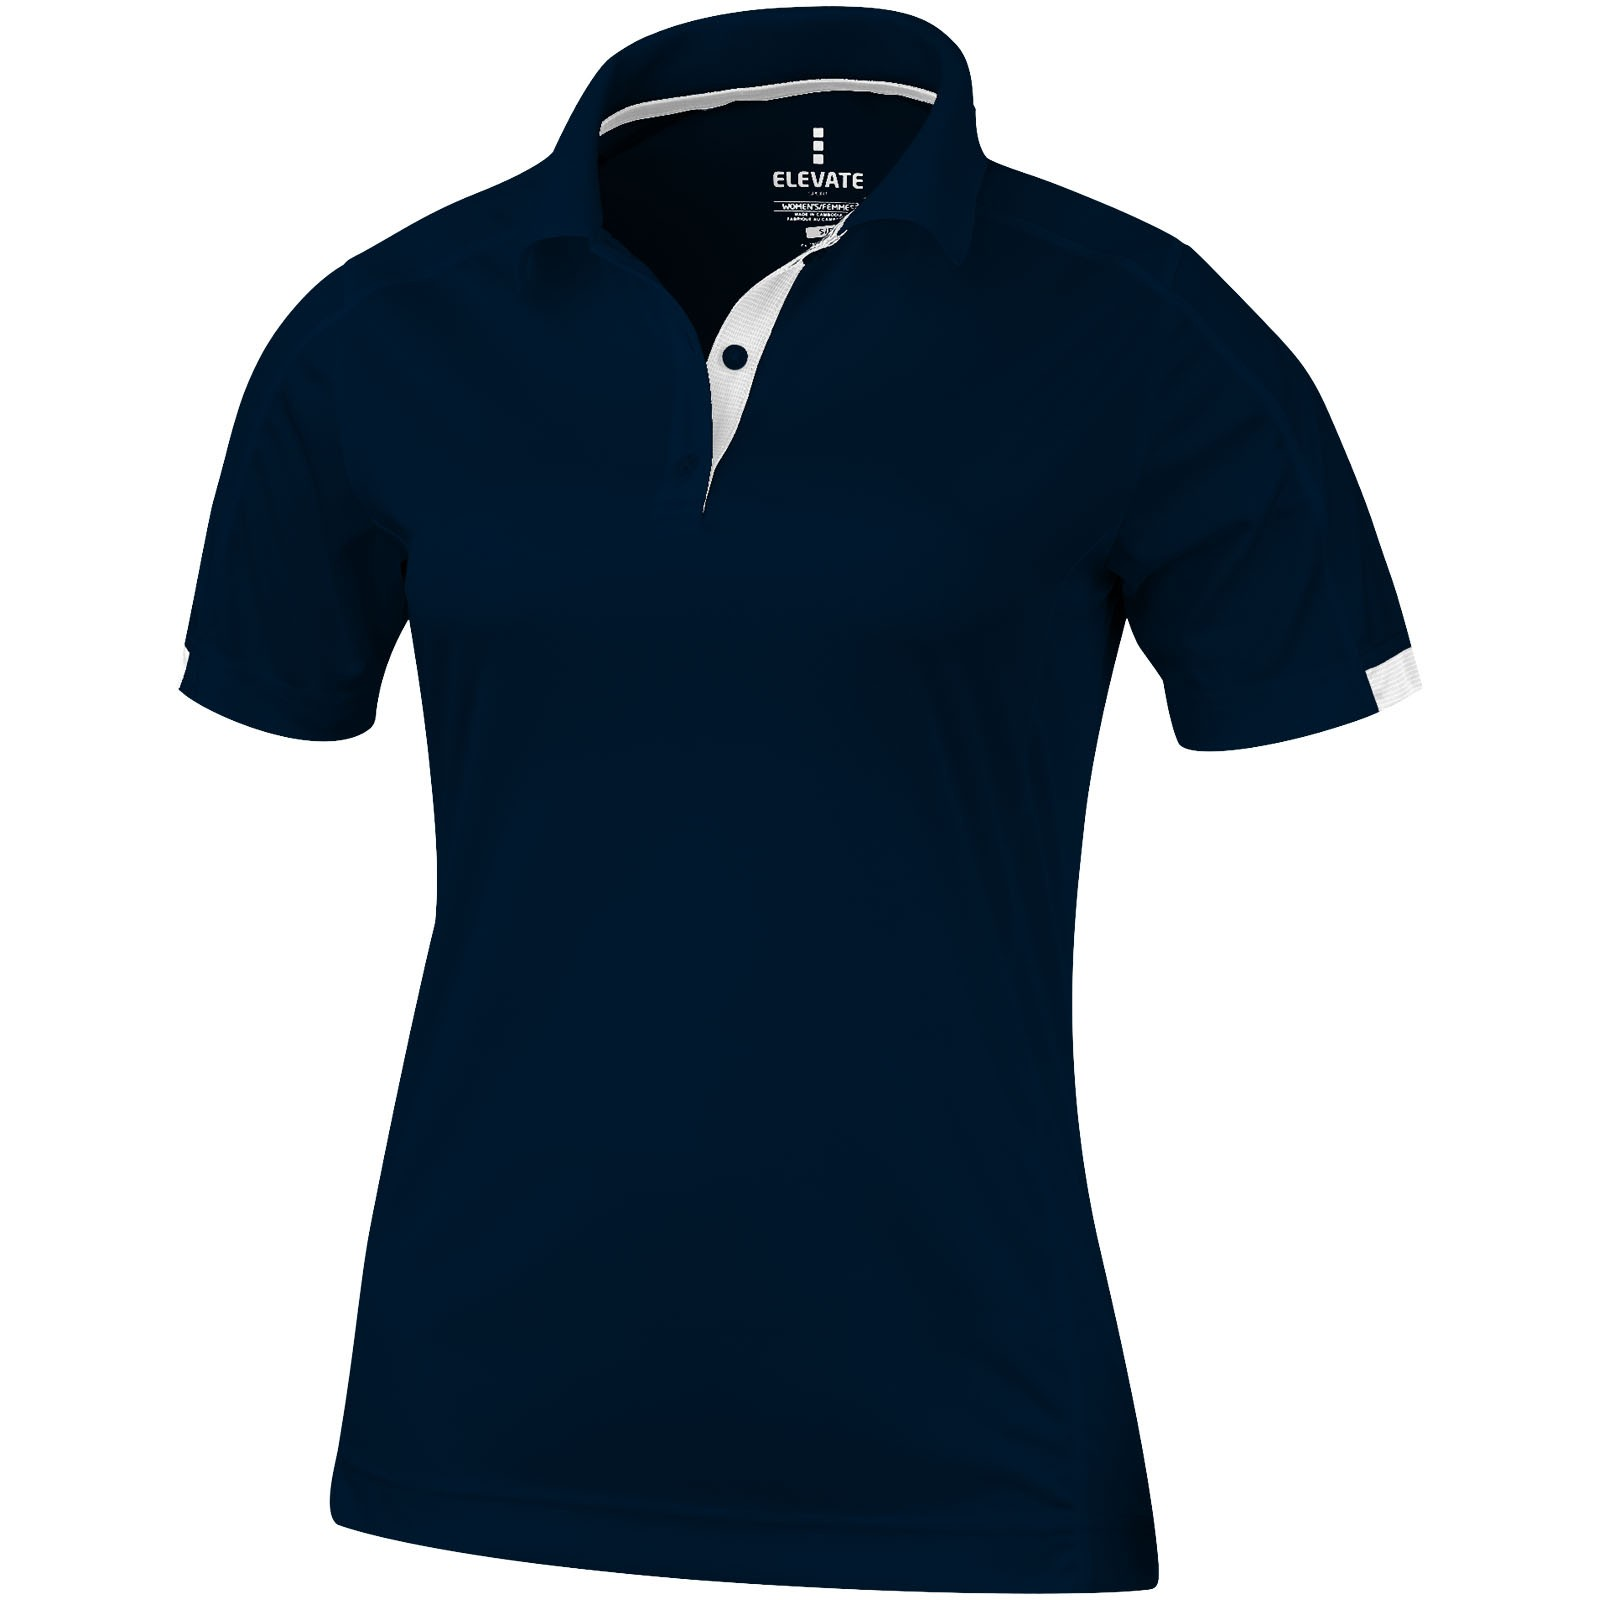 Kiso short sleeve women's cool fit polo - Navy / M